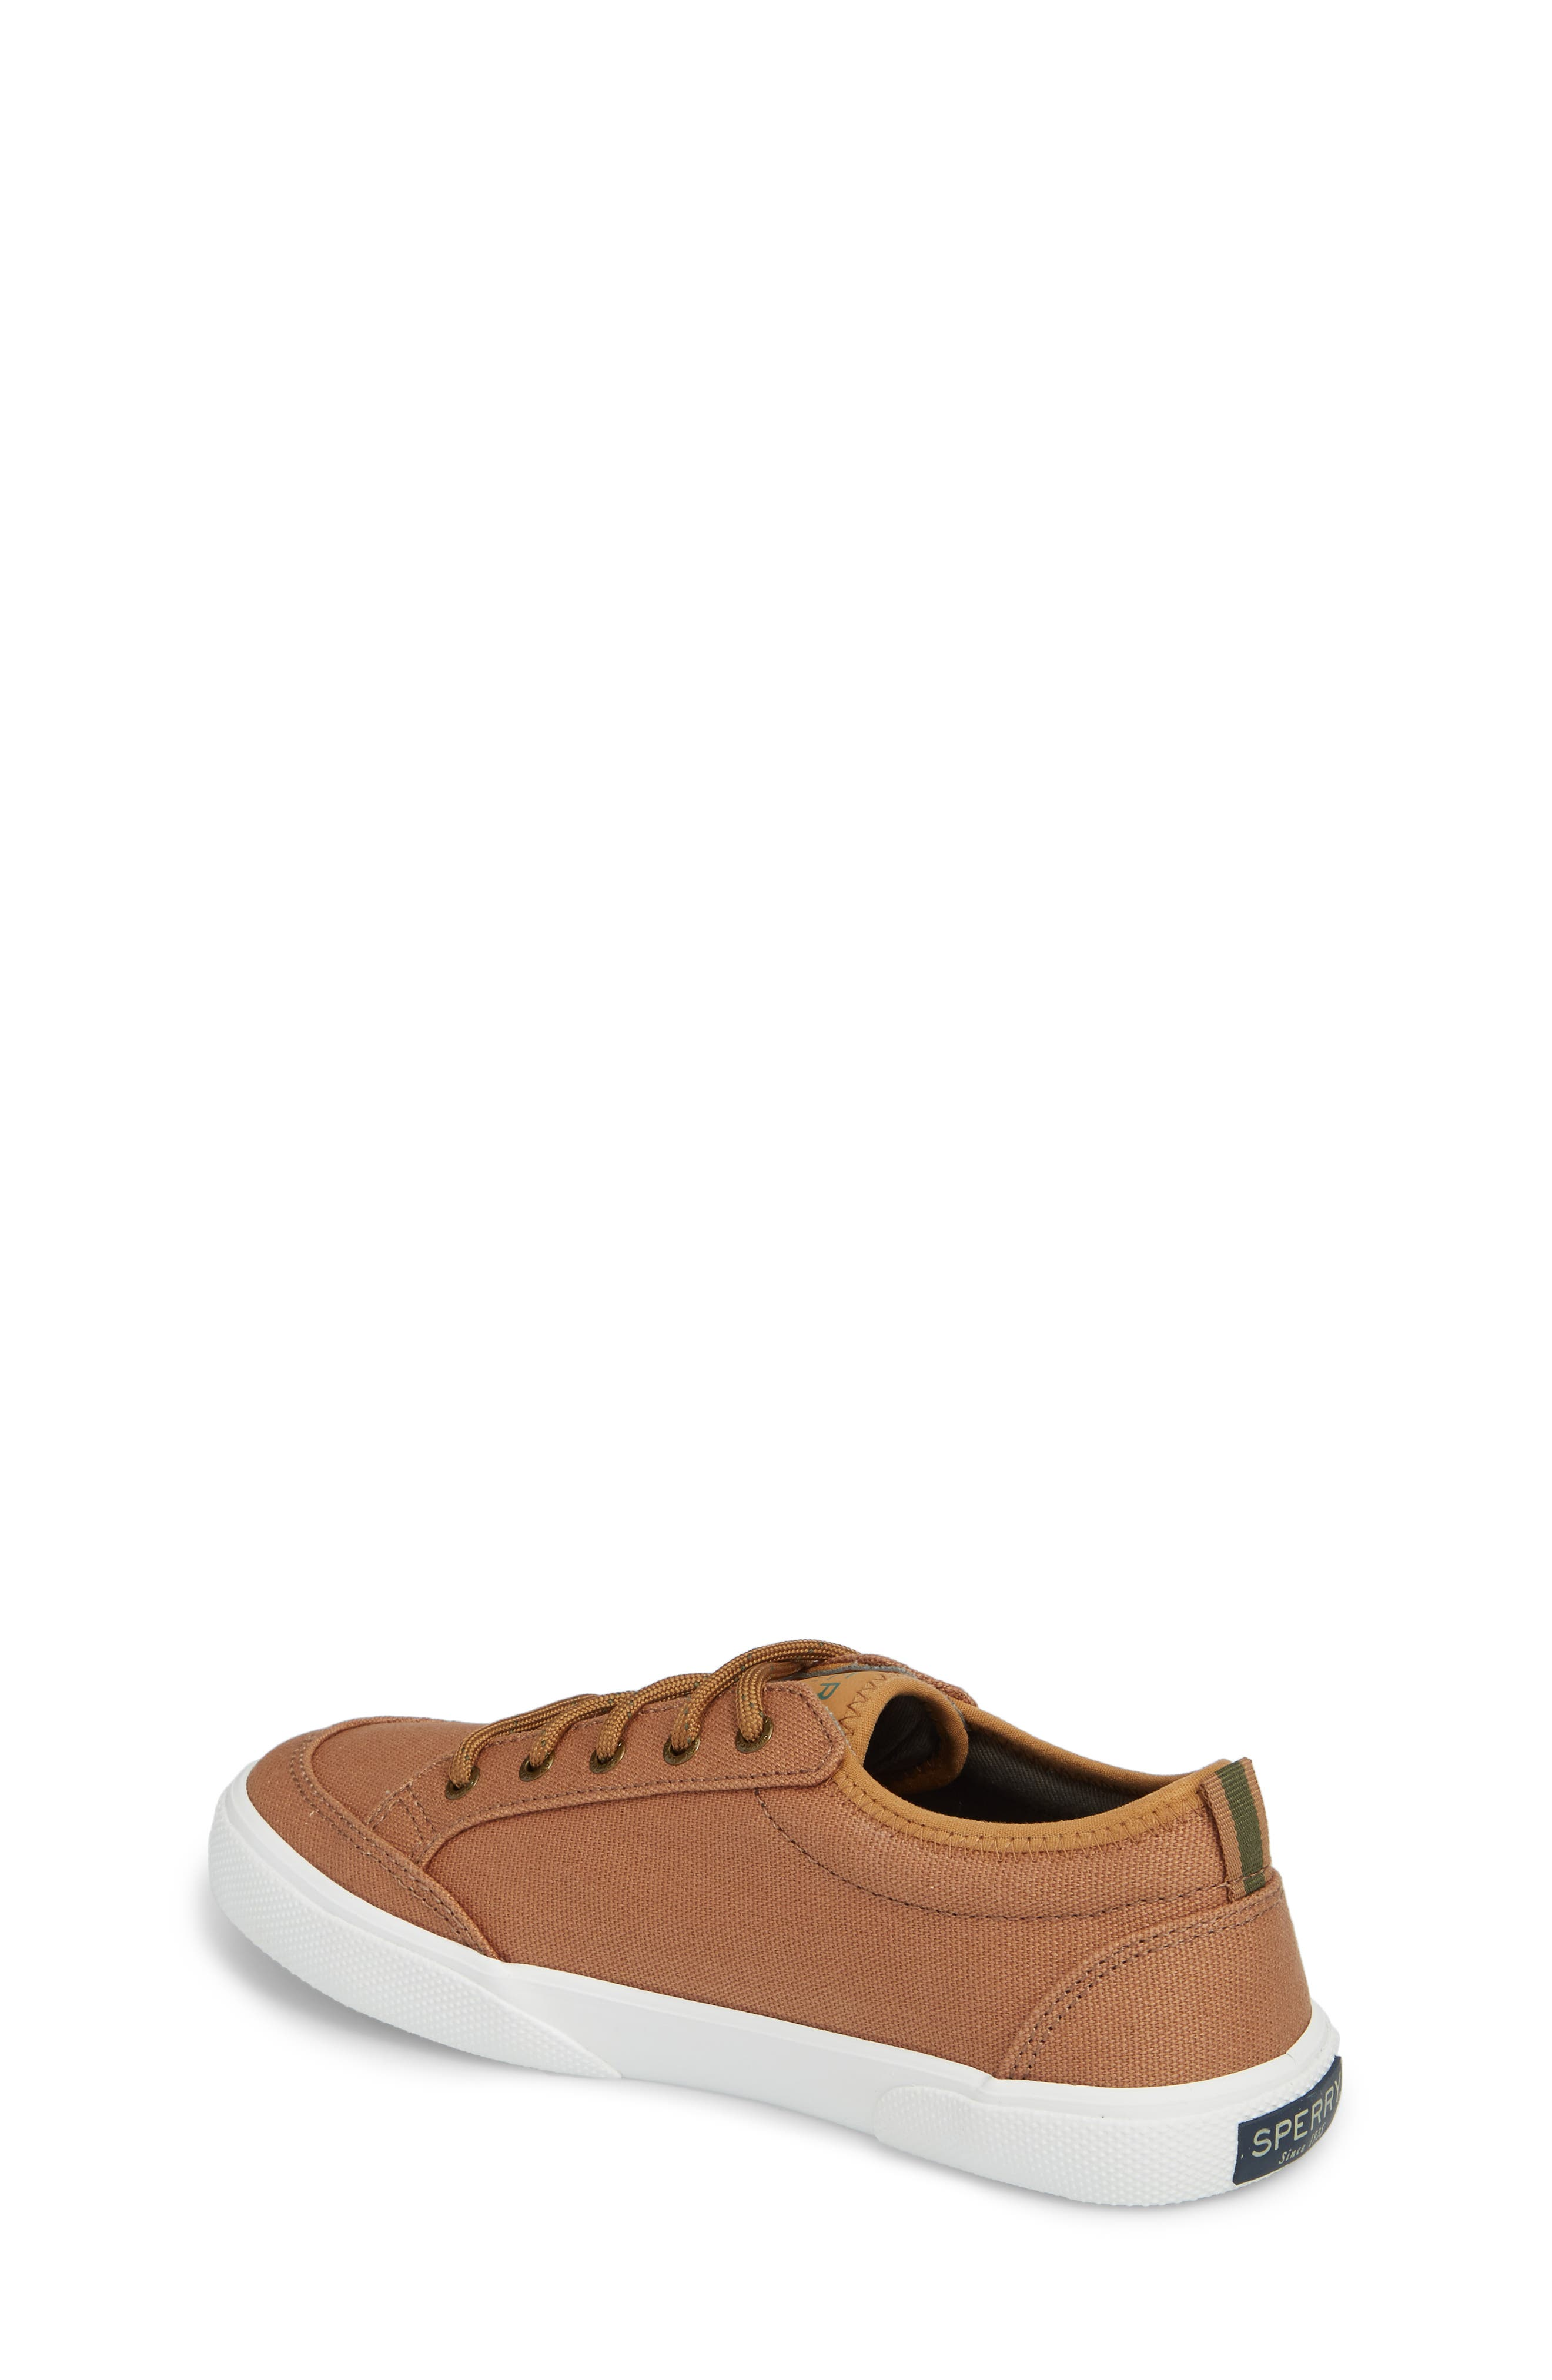 Sperry Deckfin Sneaker,                             Alternate thumbnail 2, color,                             200